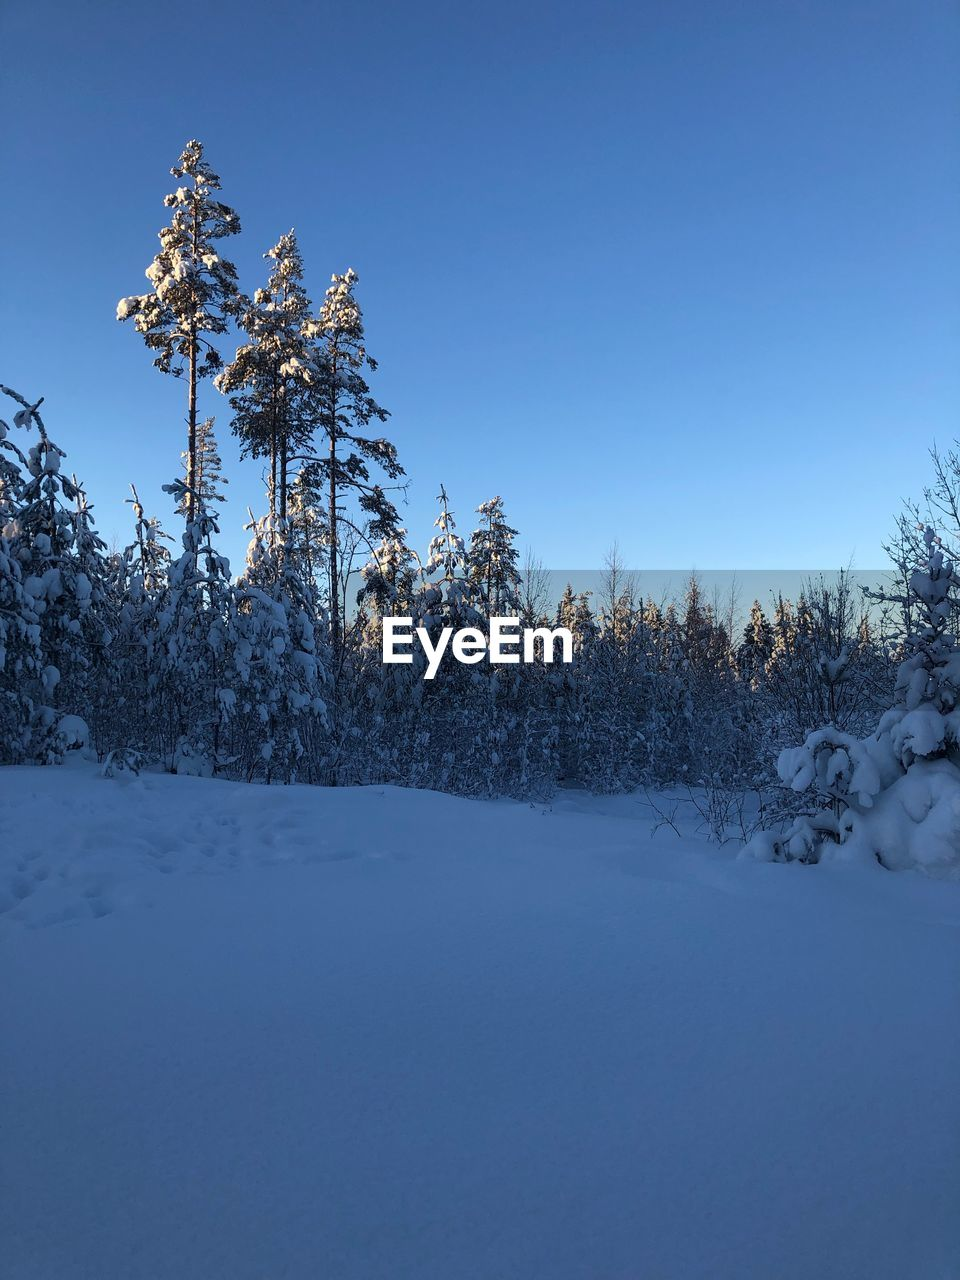 cold temperature, winter, snow, plant, tree, sky, beauty in nature, tranquility, clear sky, nature, scenics - nature, tranquil scene, no people, covering, land, copy space, day, field, blue, outdoors, pine tree, coniferous tree